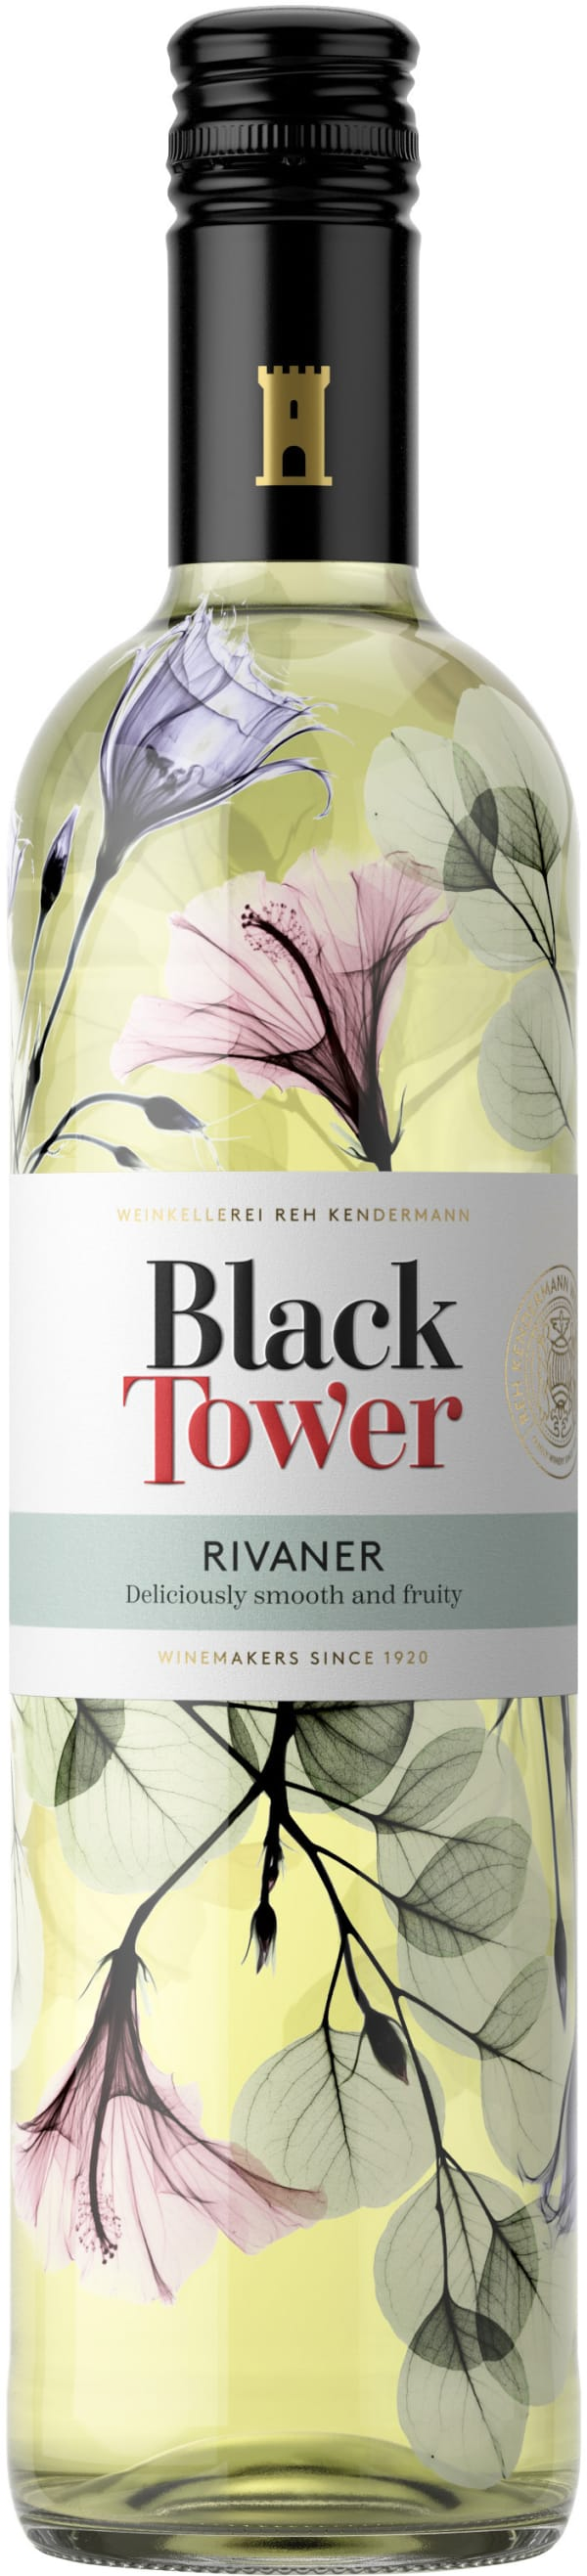 Black Tower Rivaner 2016